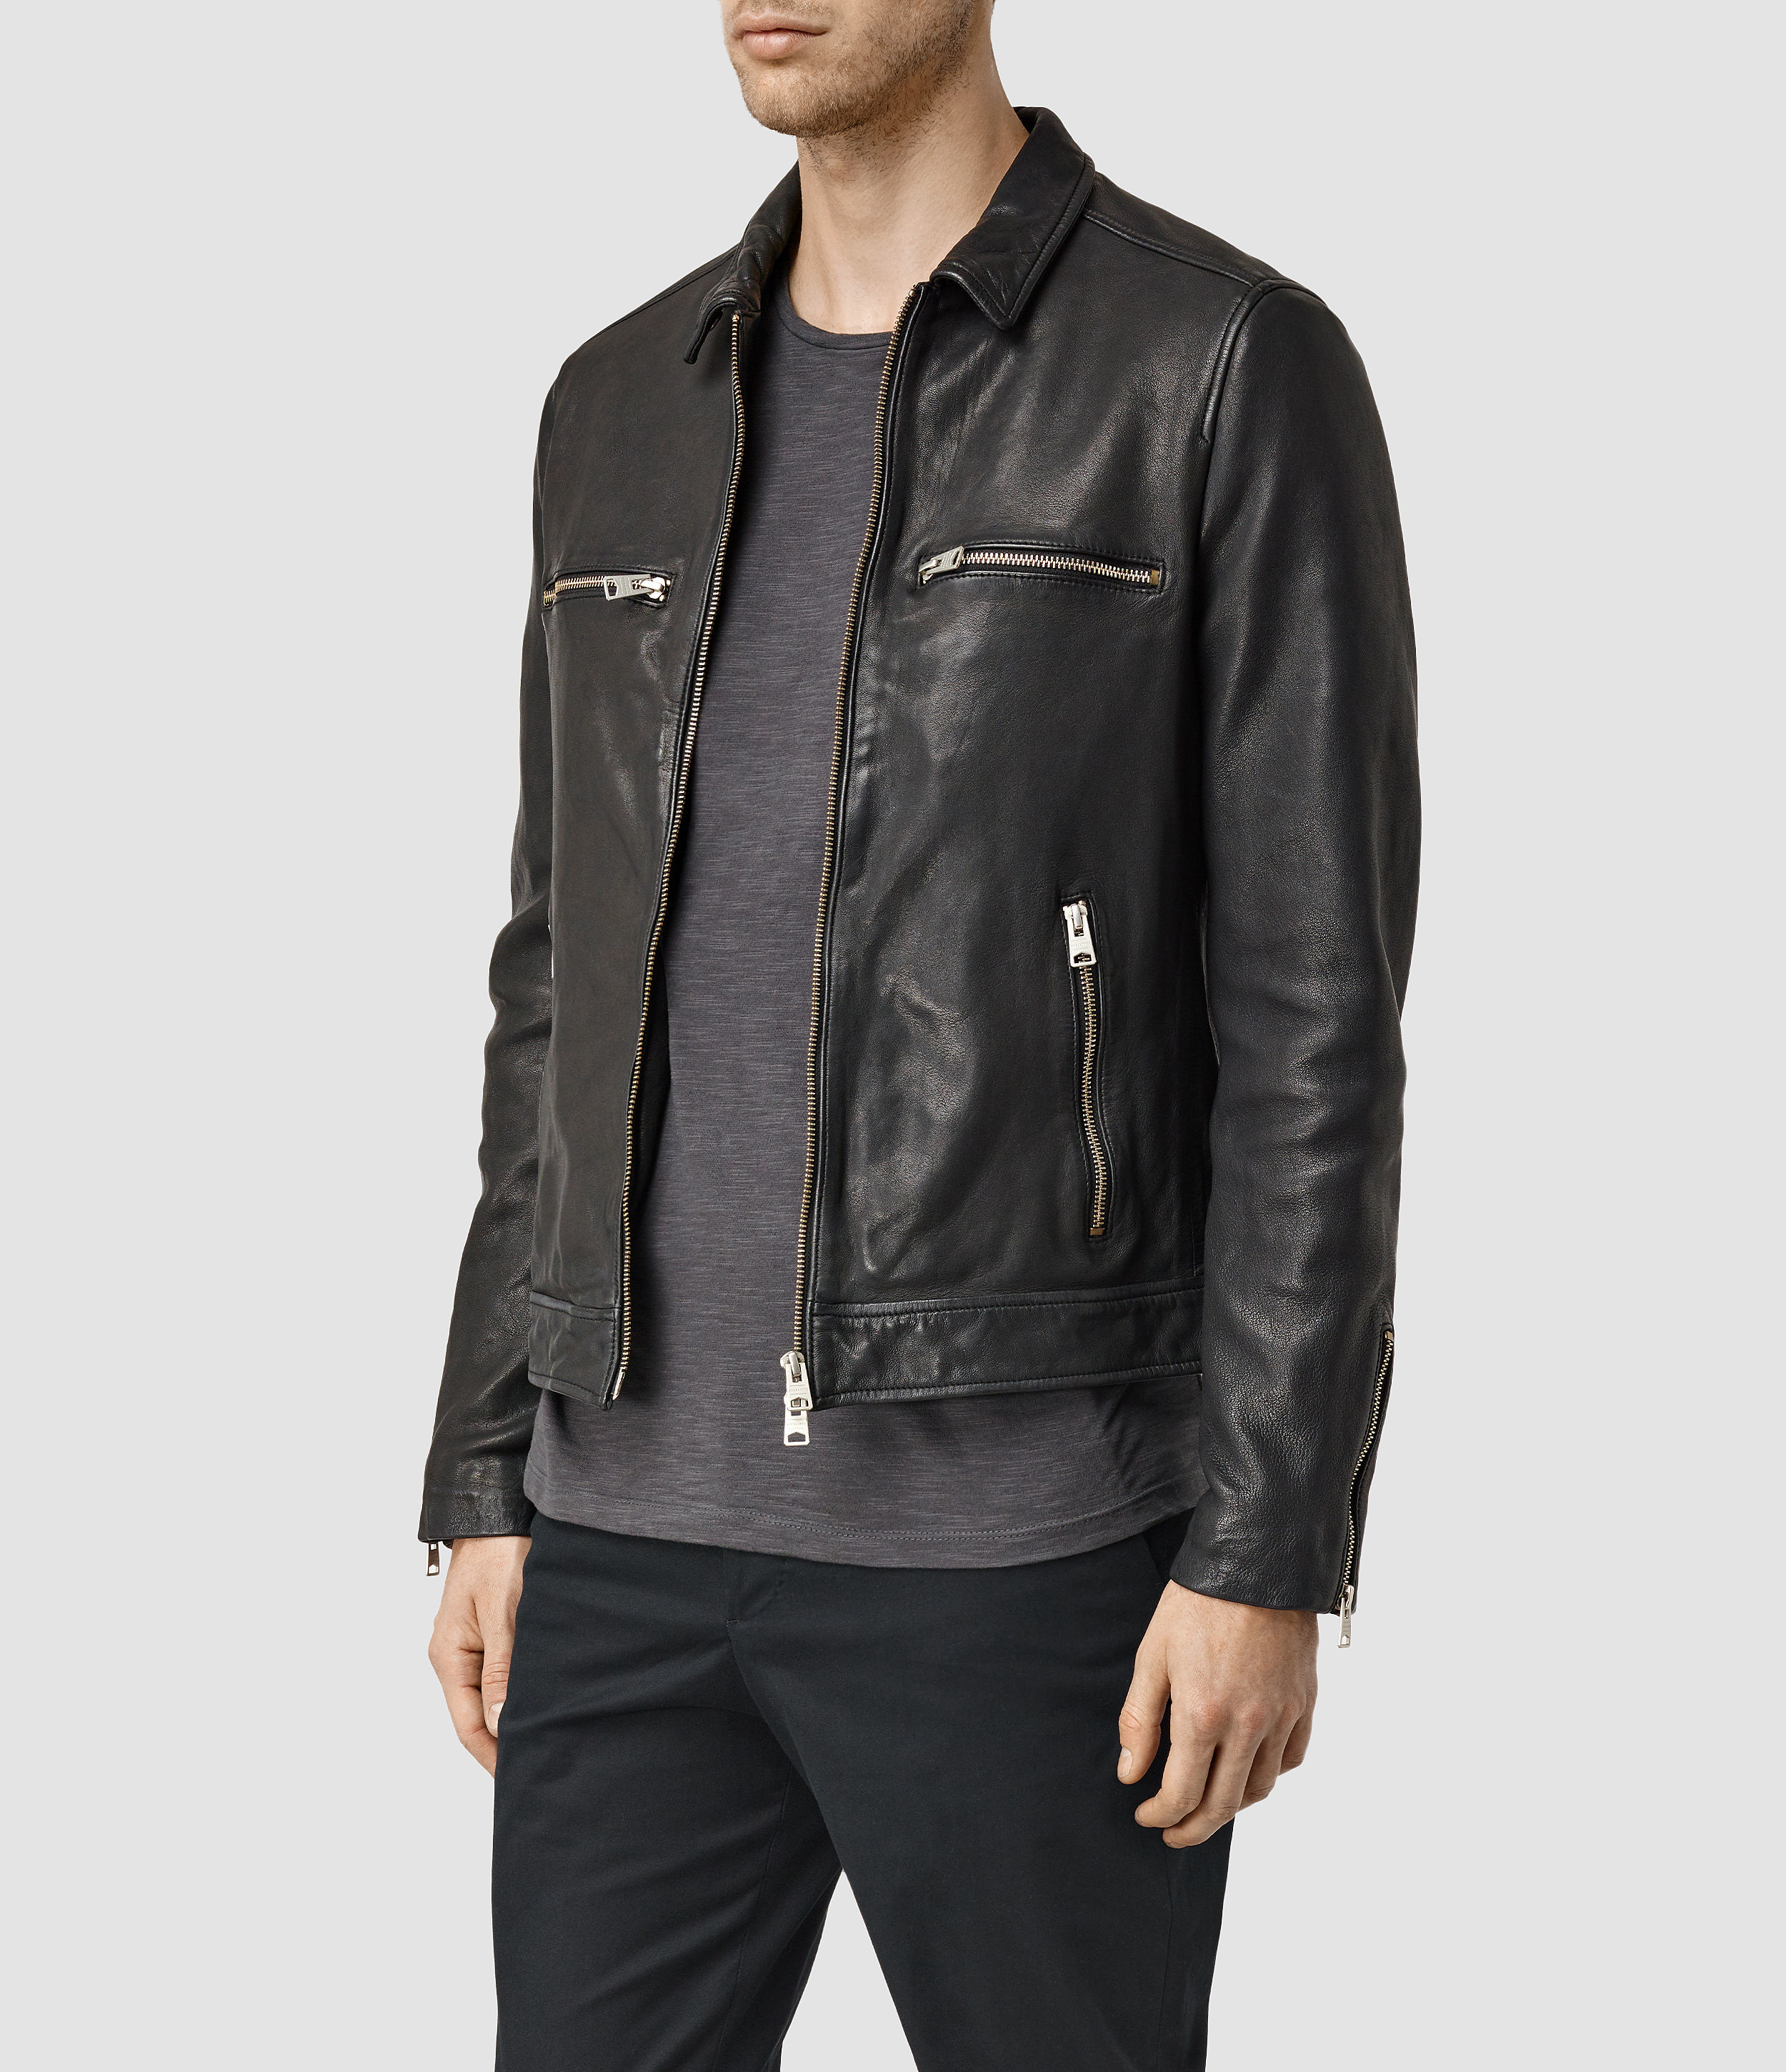 AllSaints Austell Leather Jacket Usa Usa in Black for Men